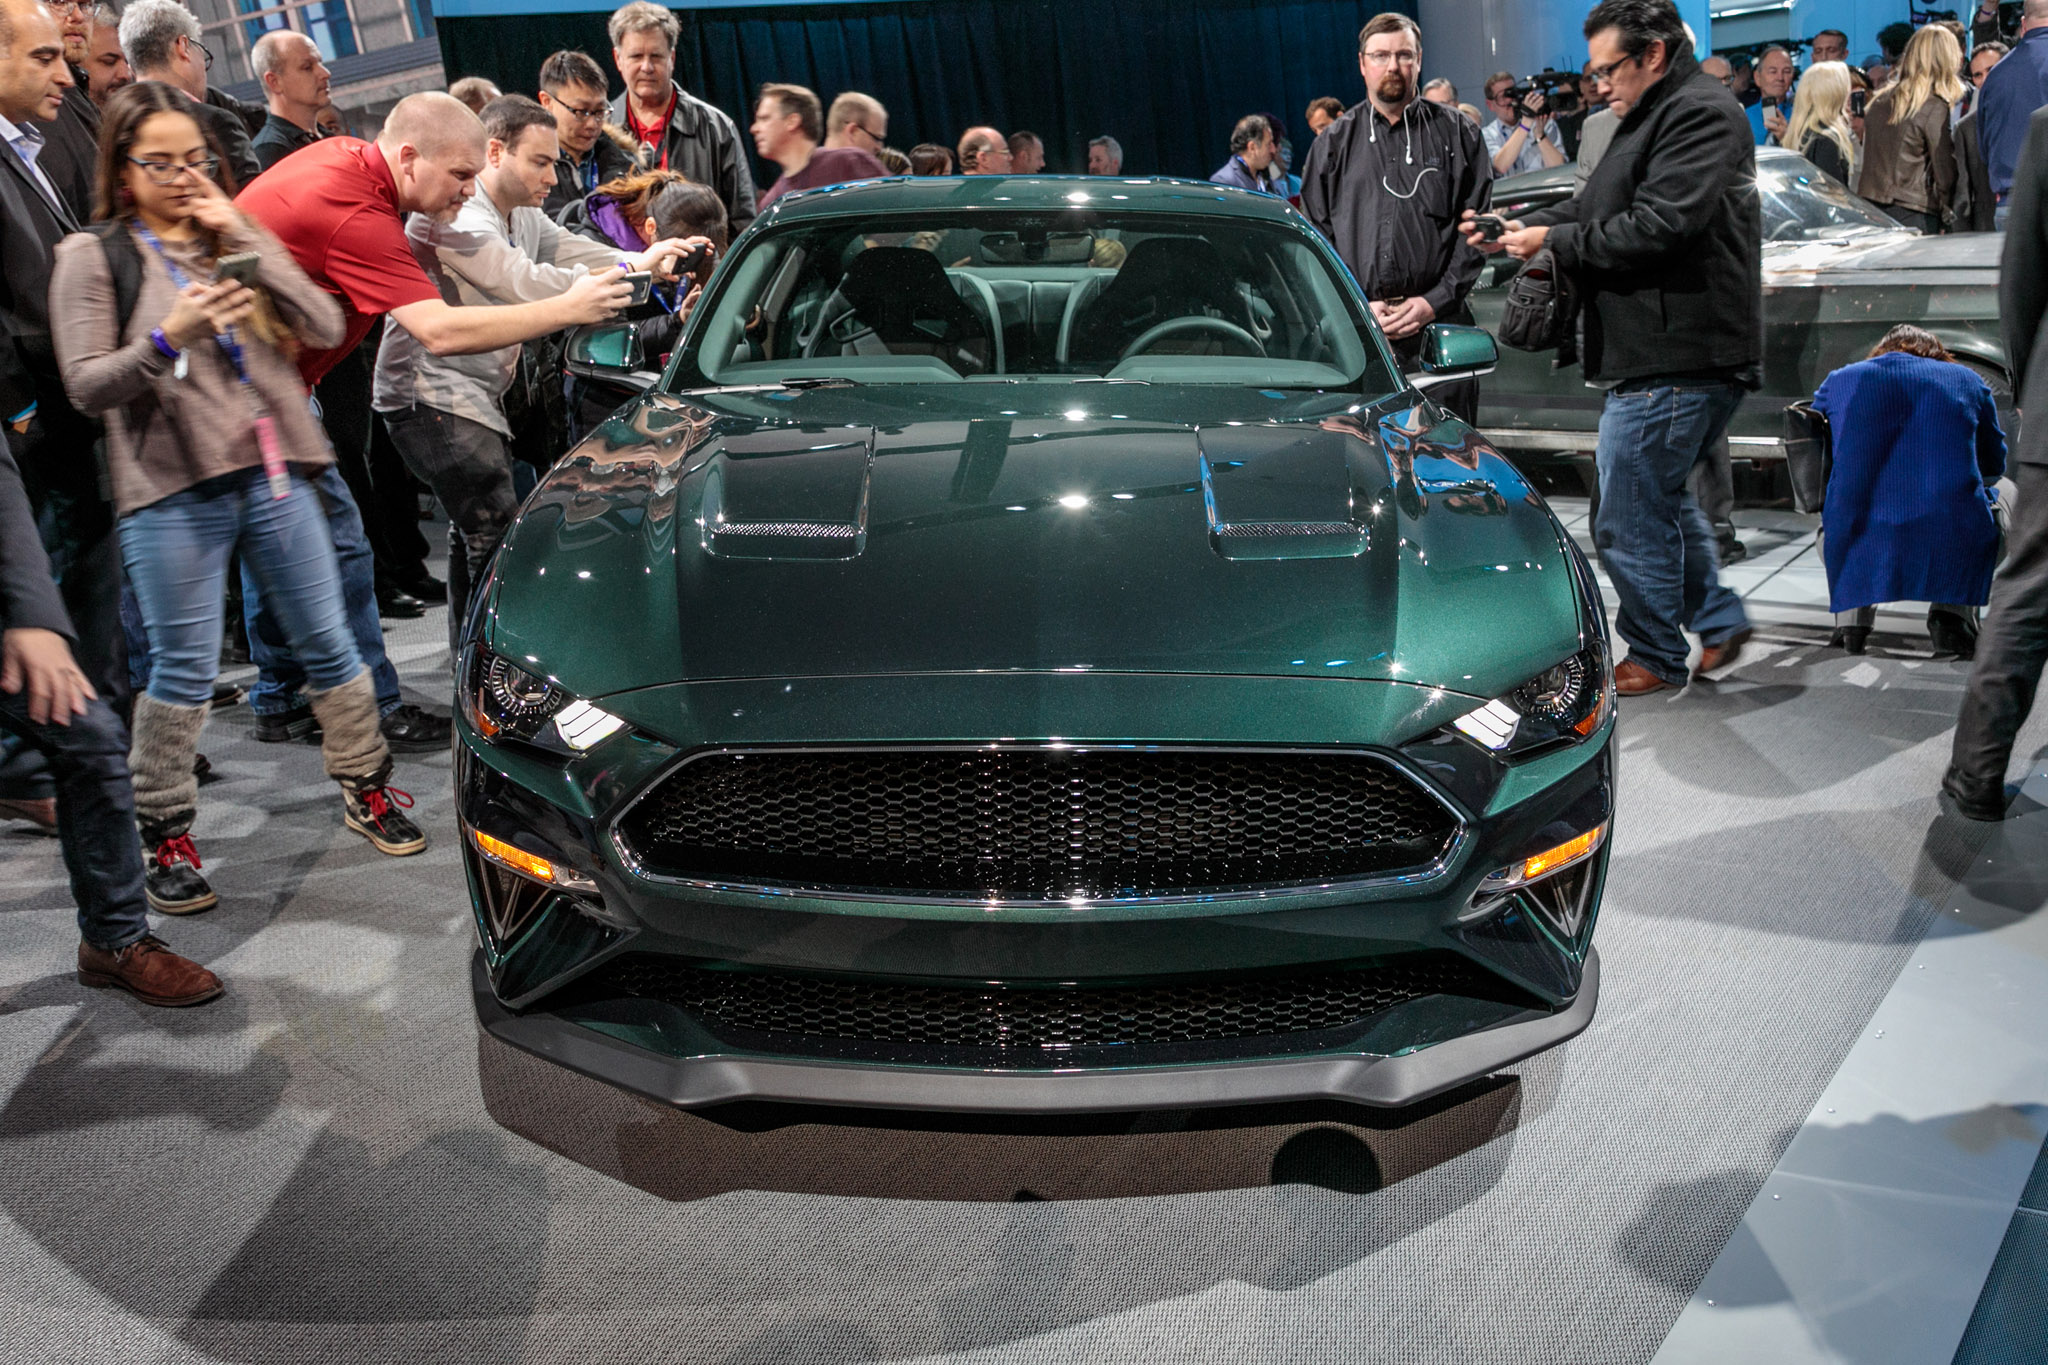 2020 Dodge Charger >> Molly McQueen Drives Up in 2019 Ford Mustang Bullitt | Automobile Magazine